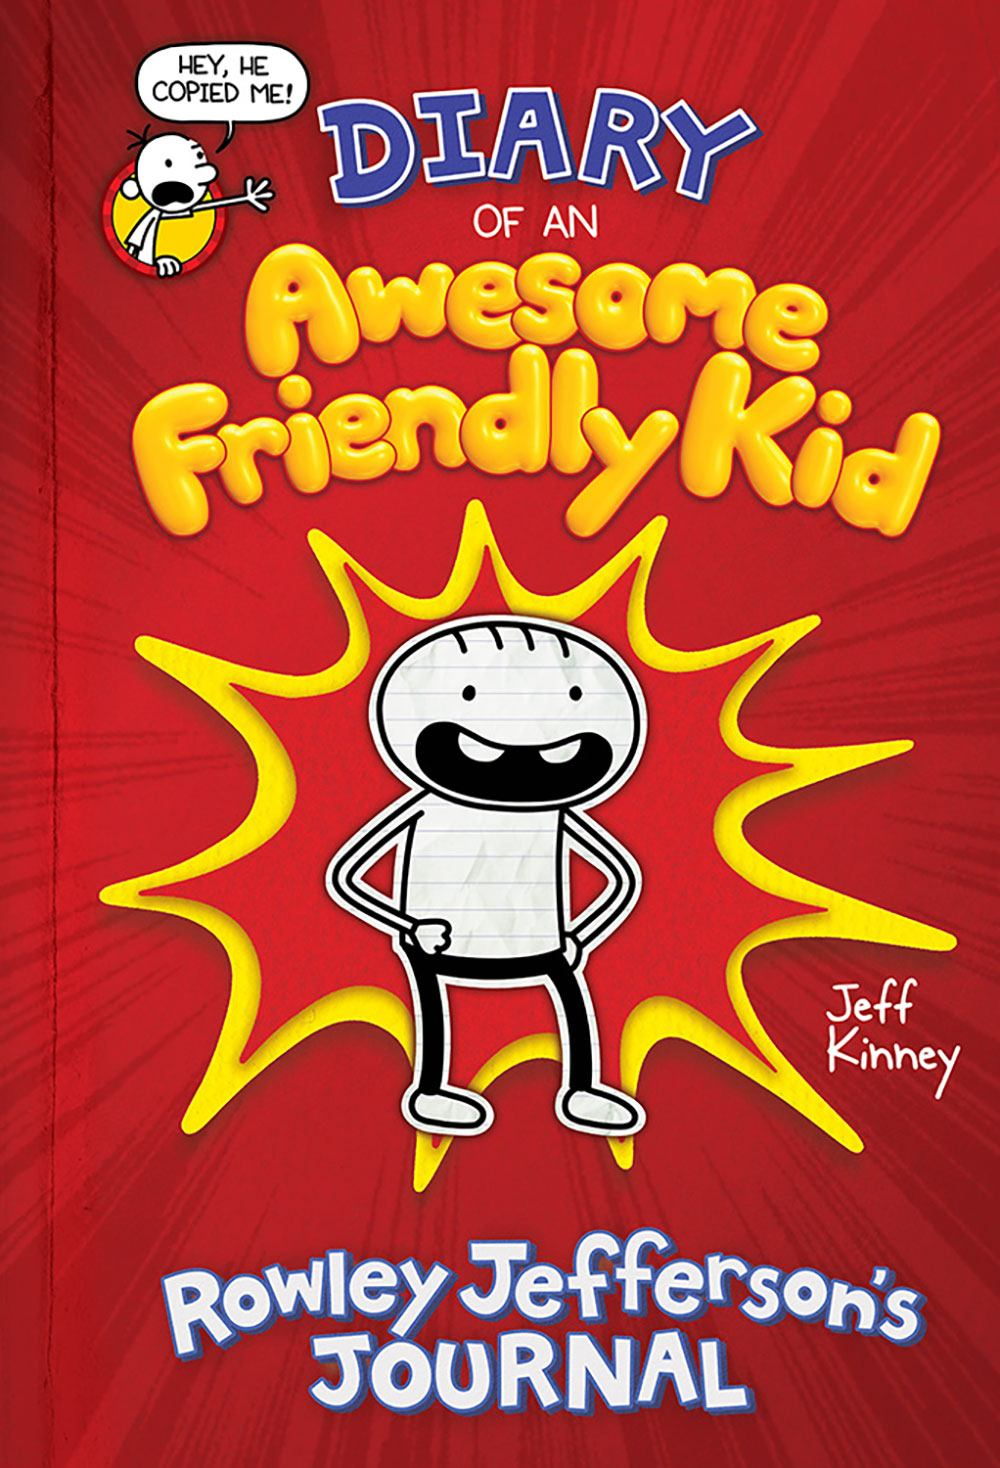 Cover image for Diary Of An Awesome Friendly Kid: Rowley Jefferson's Journal